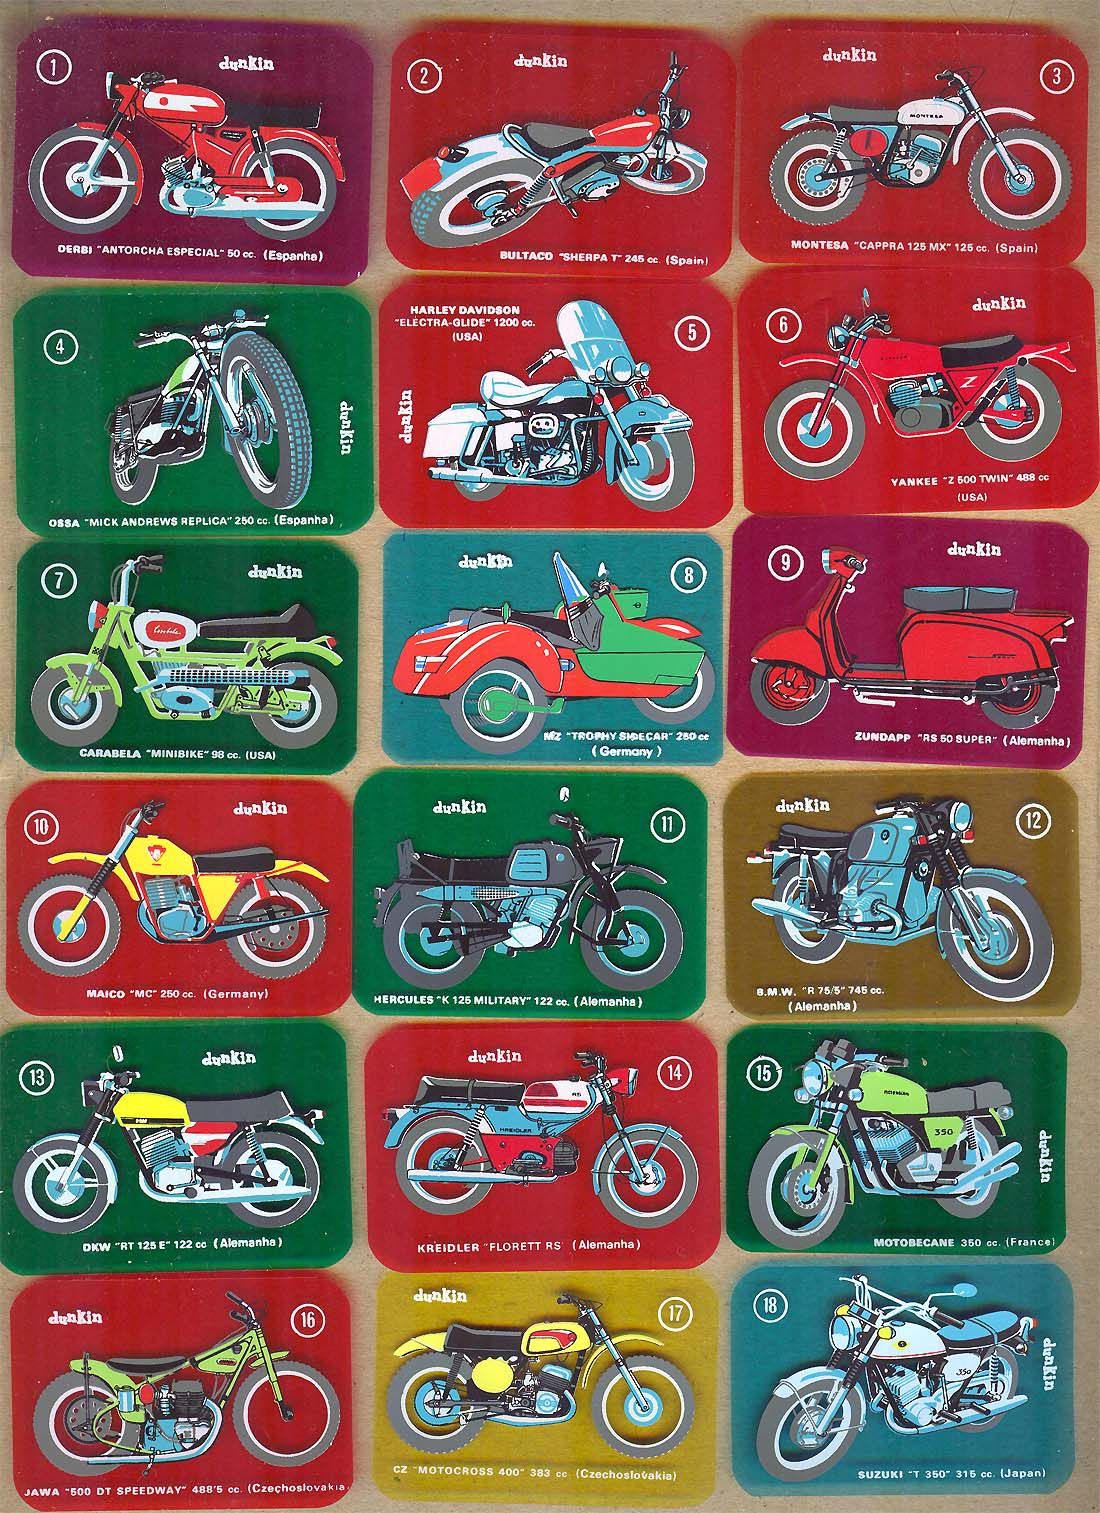 Las motos del chicle Dunkin 2vvqqvk